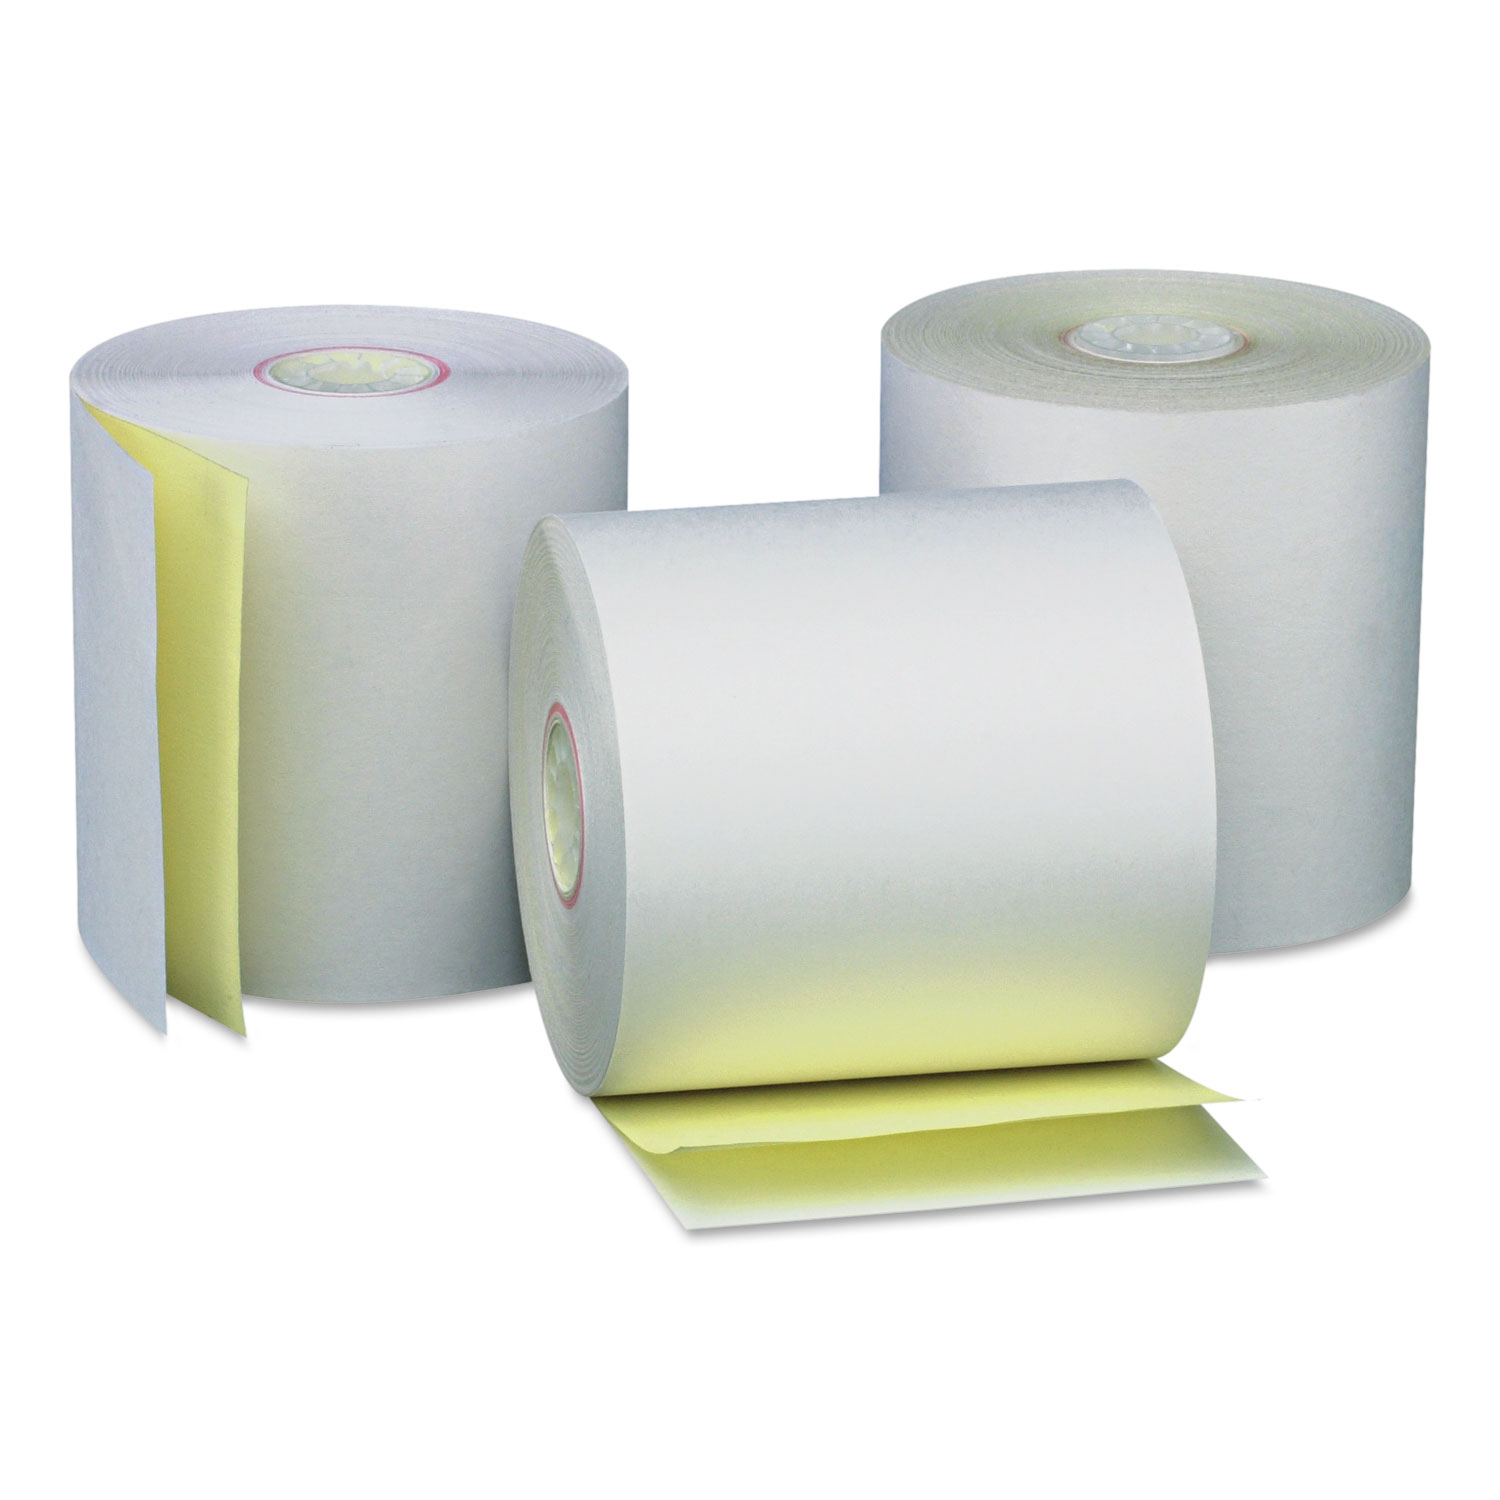 Carbonless Paper Rolls, White/Canary, 3 x 90 ft, 50/Carton